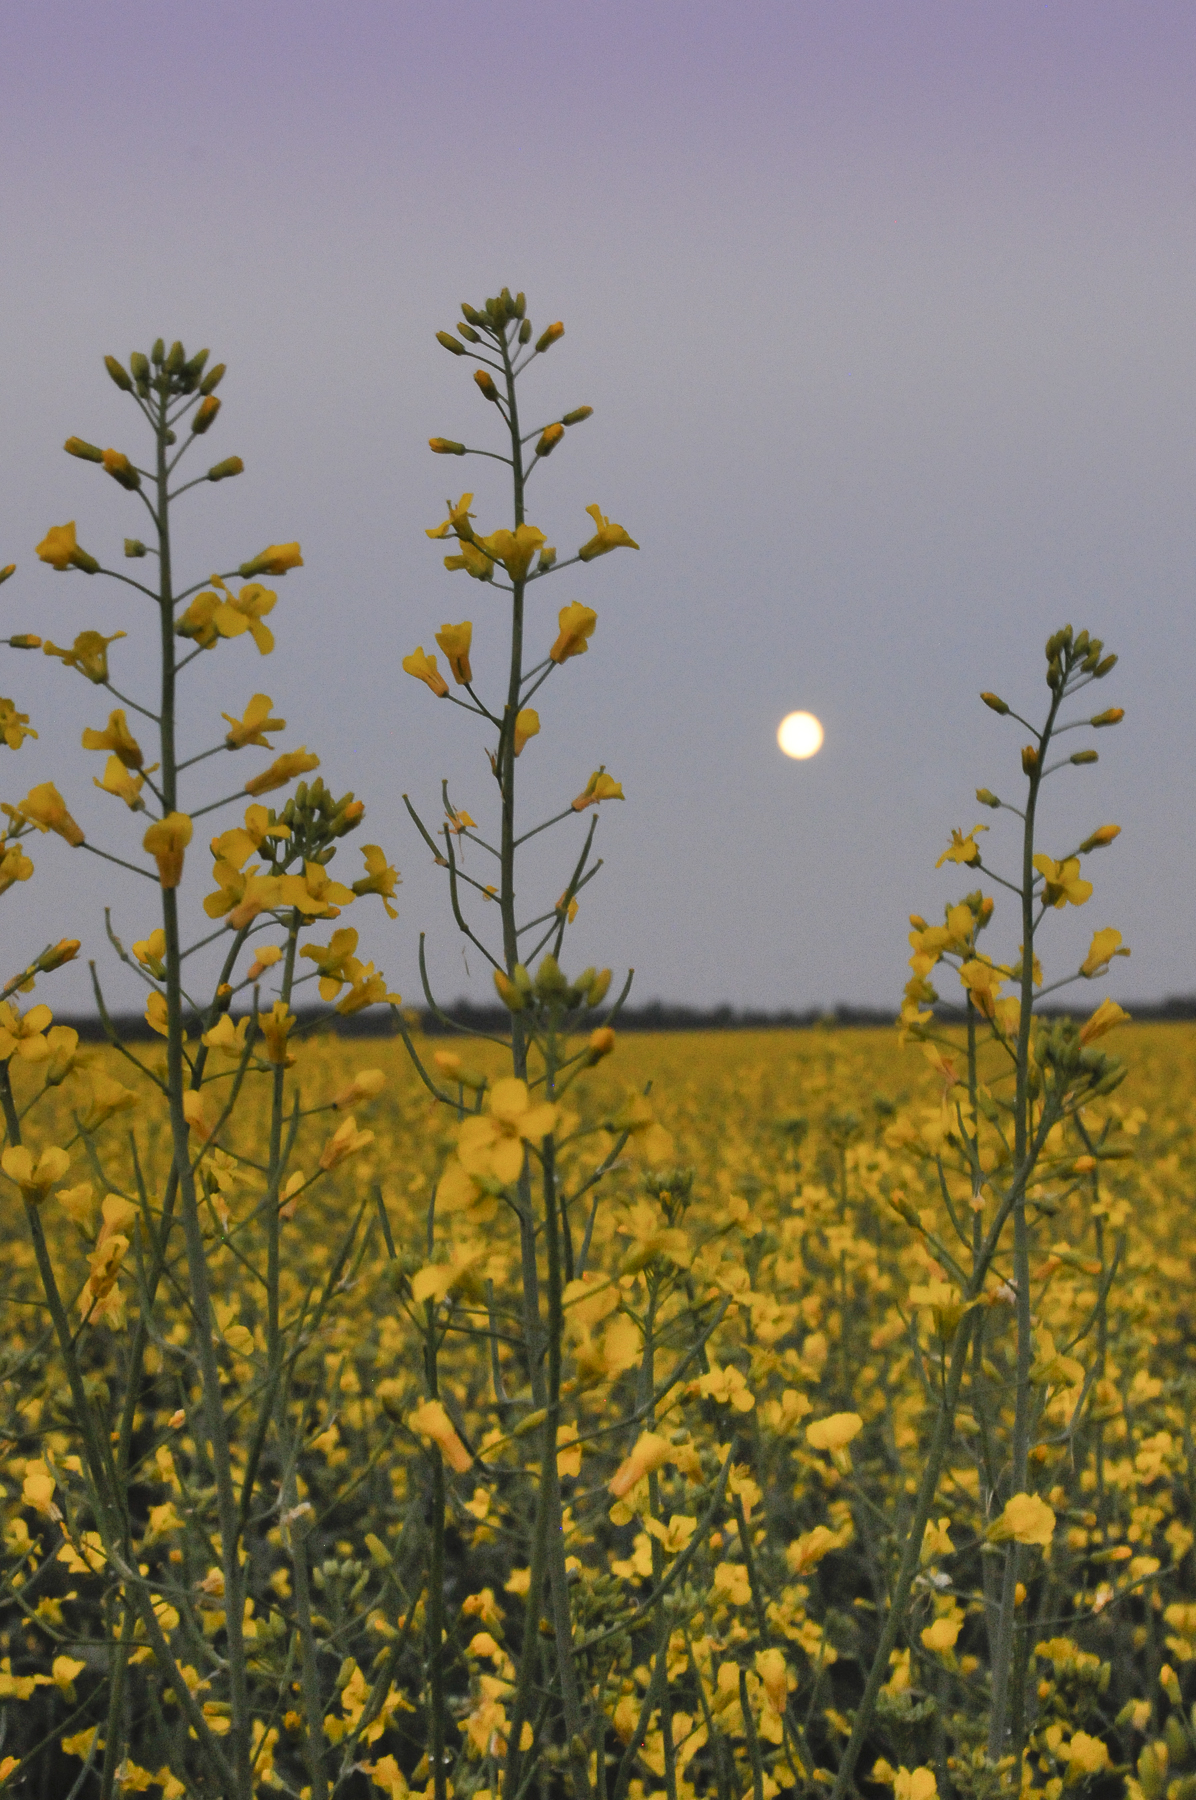 Full Moon over canola field